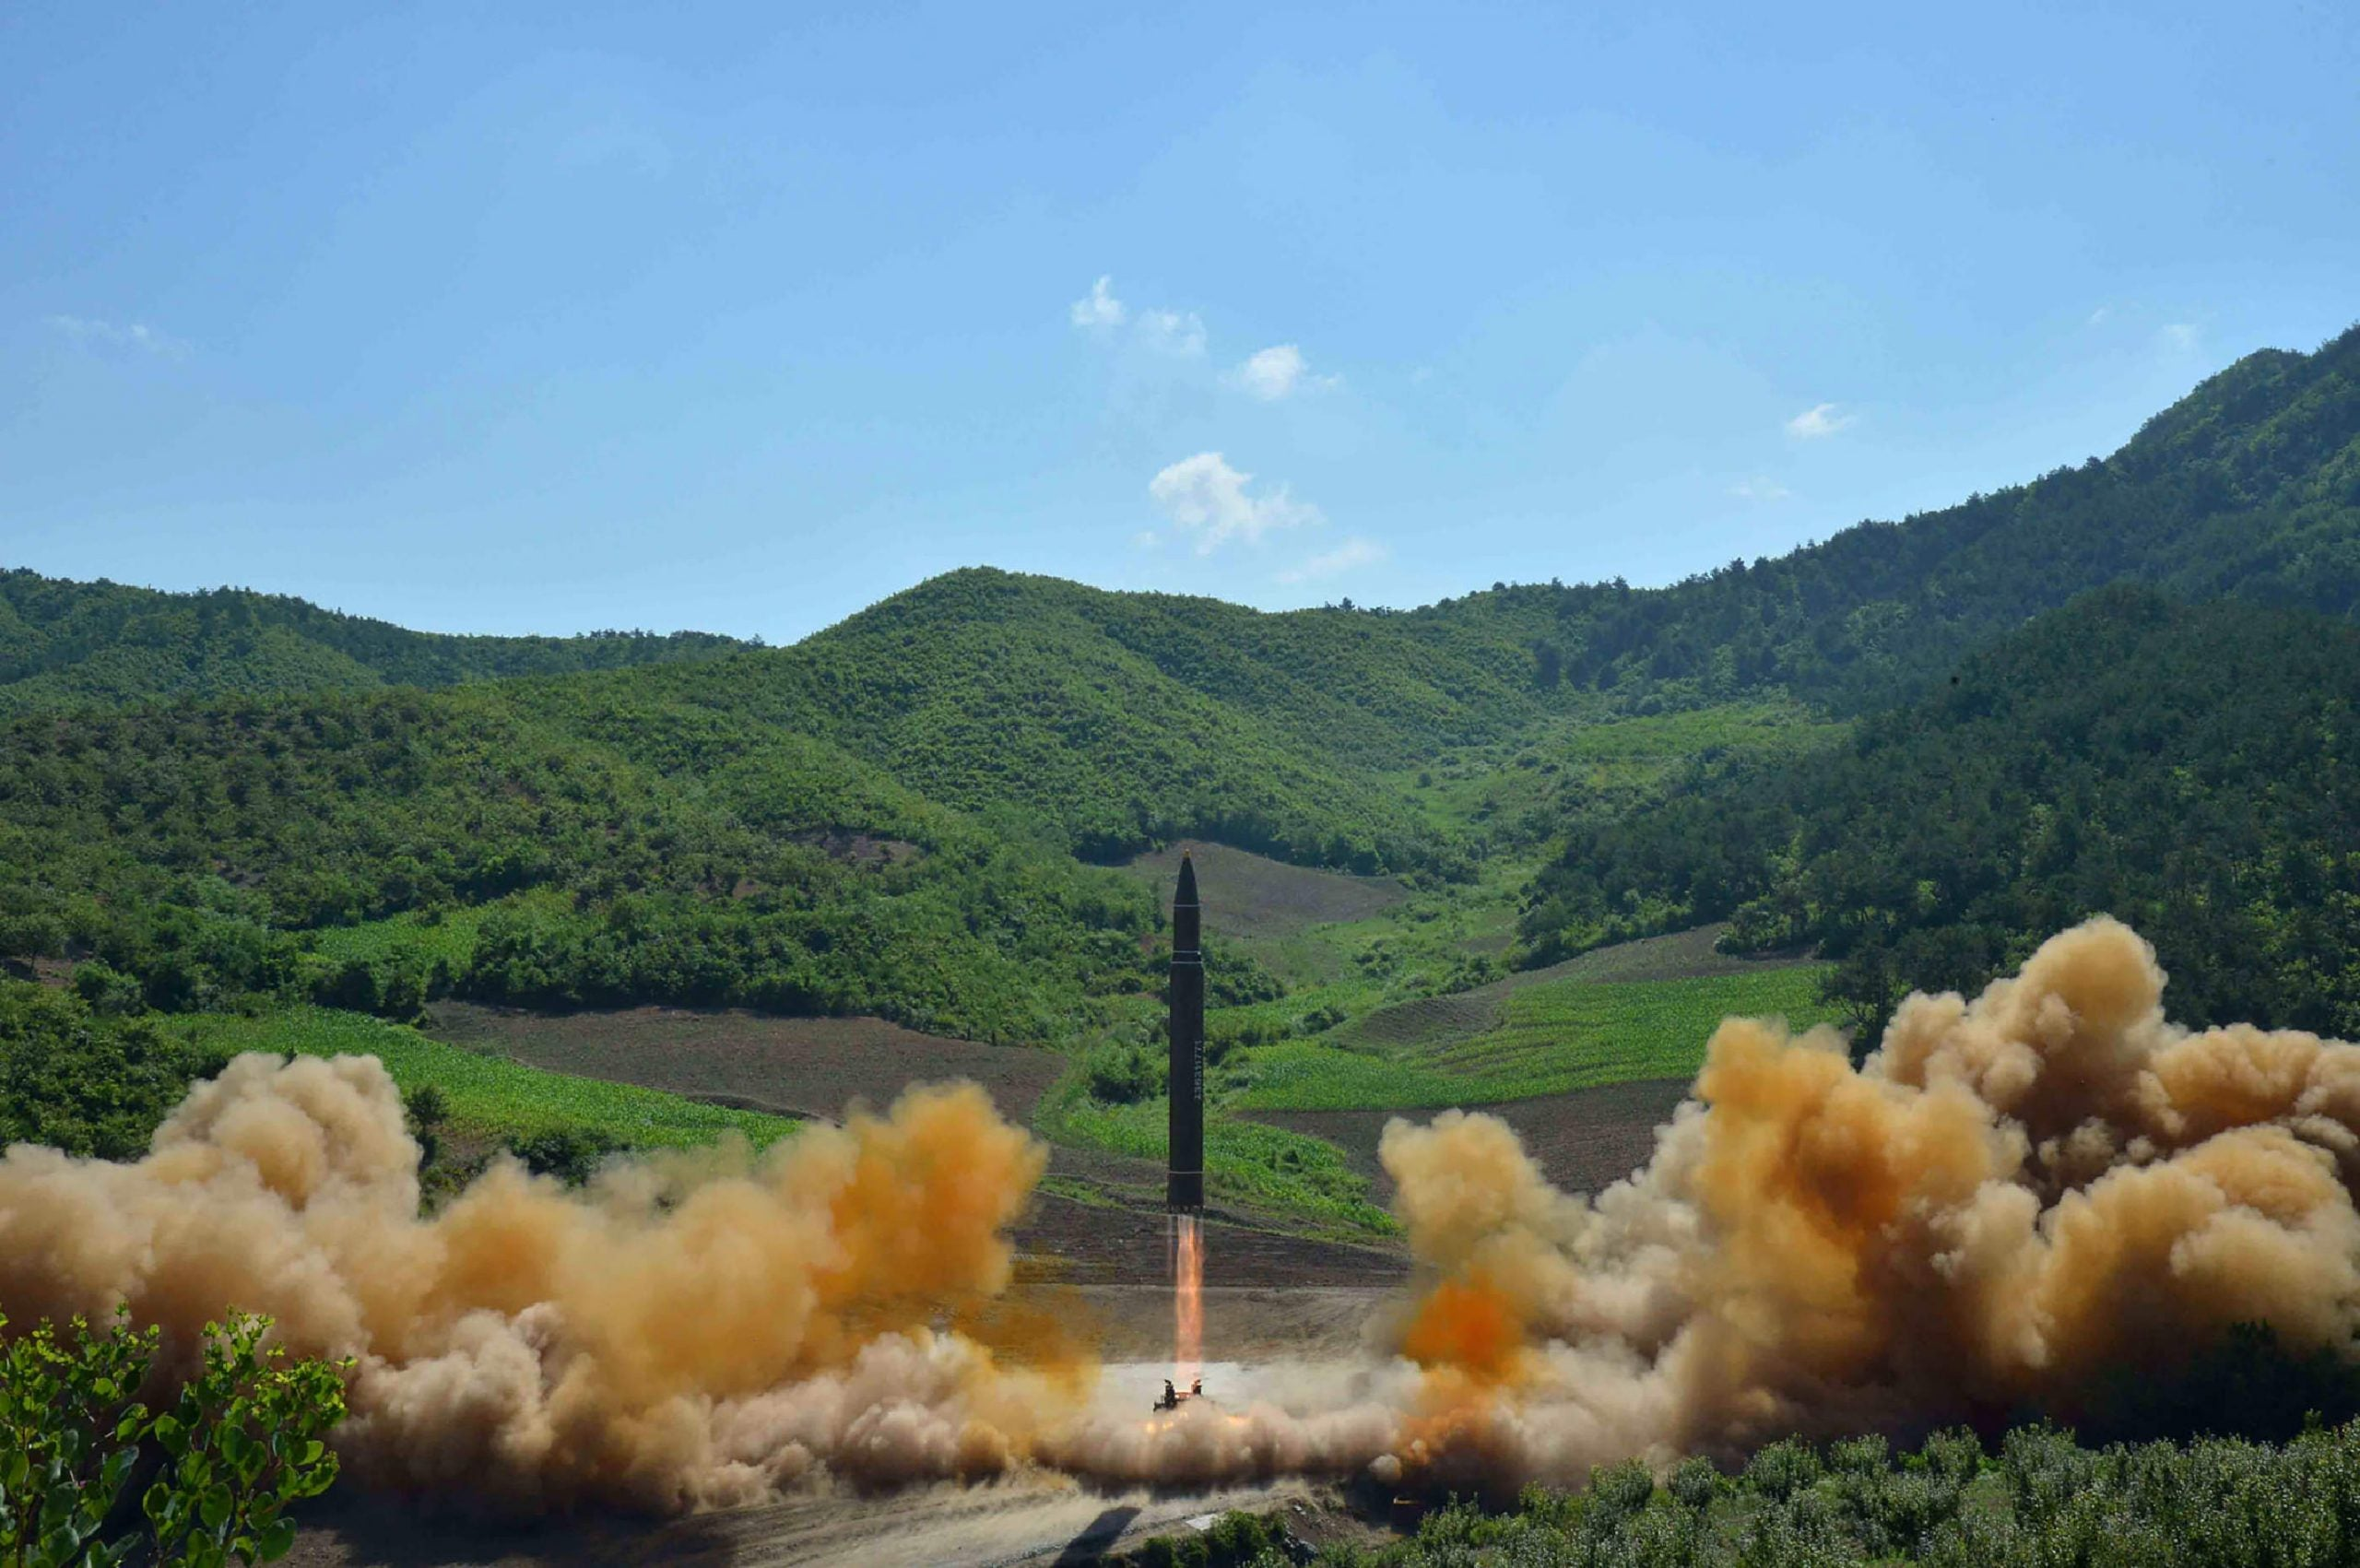 North Korea as a nuclear power: is there anything we can do about it?